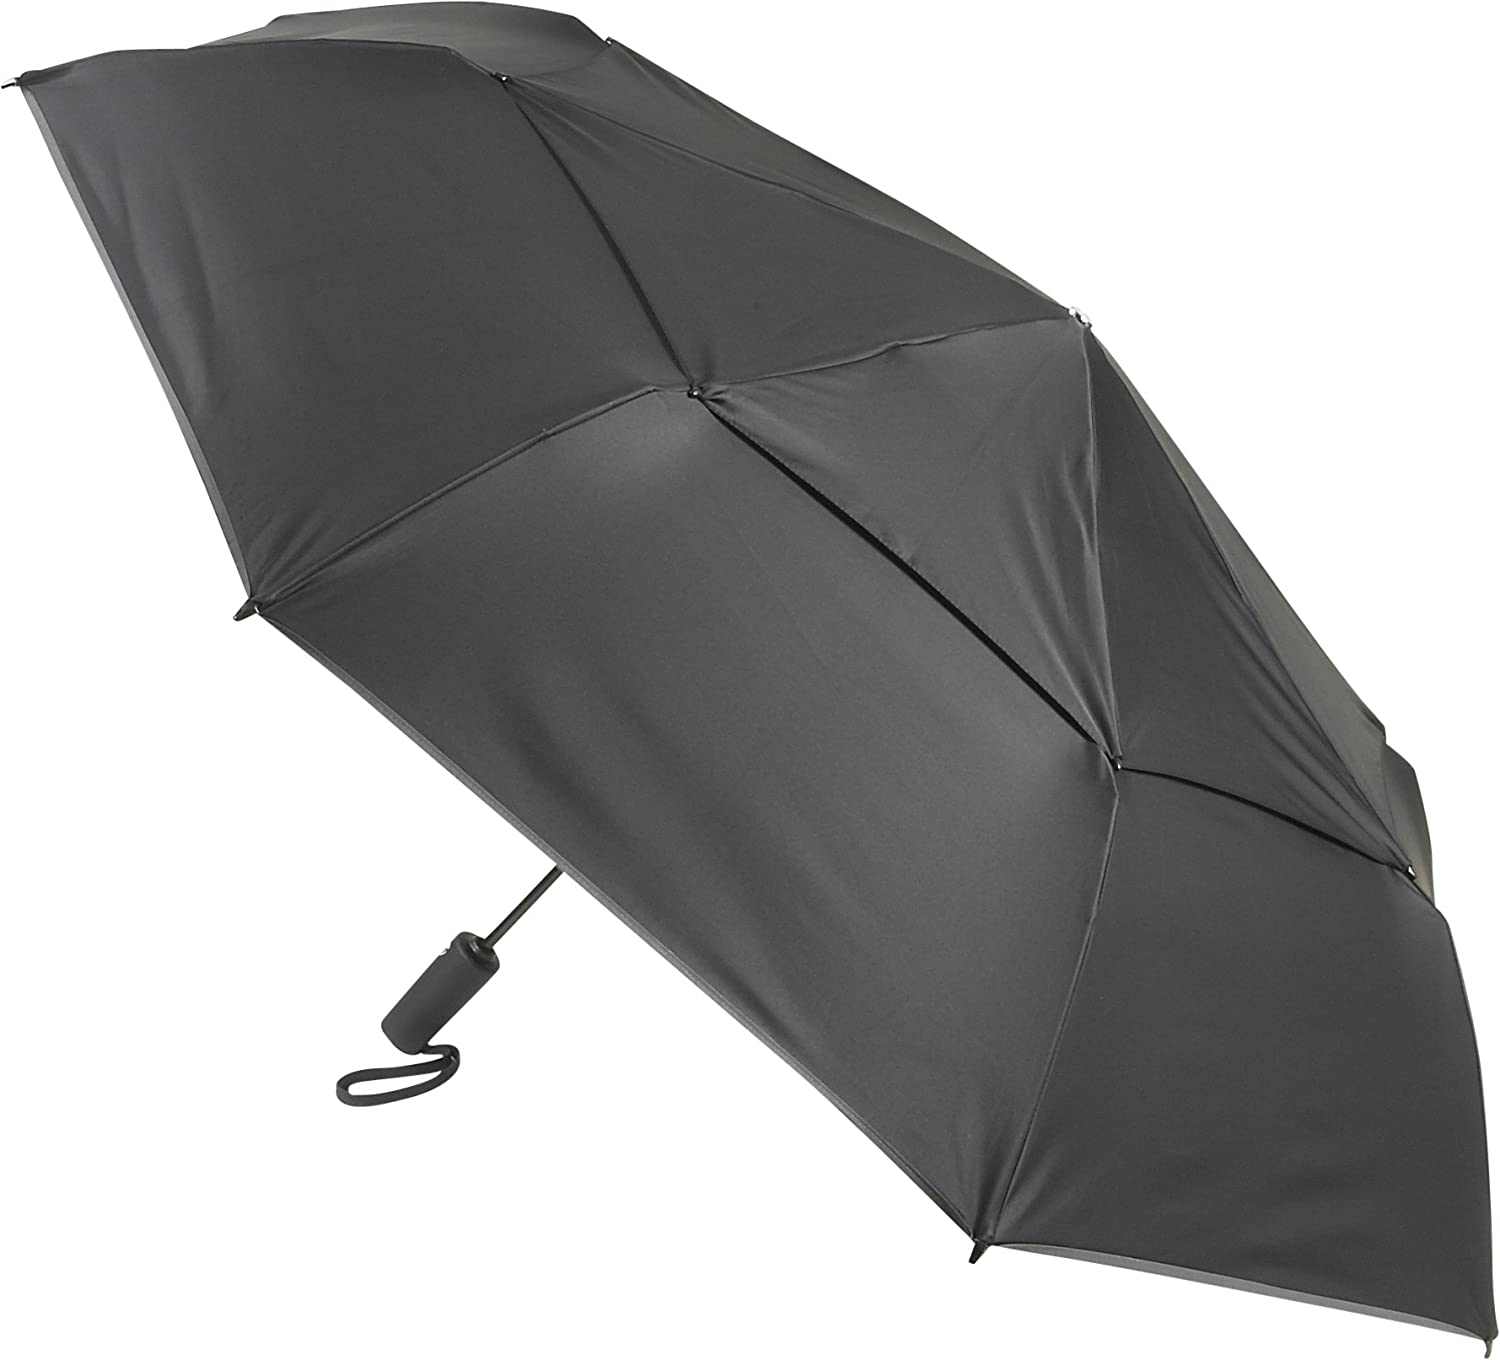 Amazon.com | Tumi Unisex Large Auto Close Umbrella Black Umbrella One Size | Umbrellas